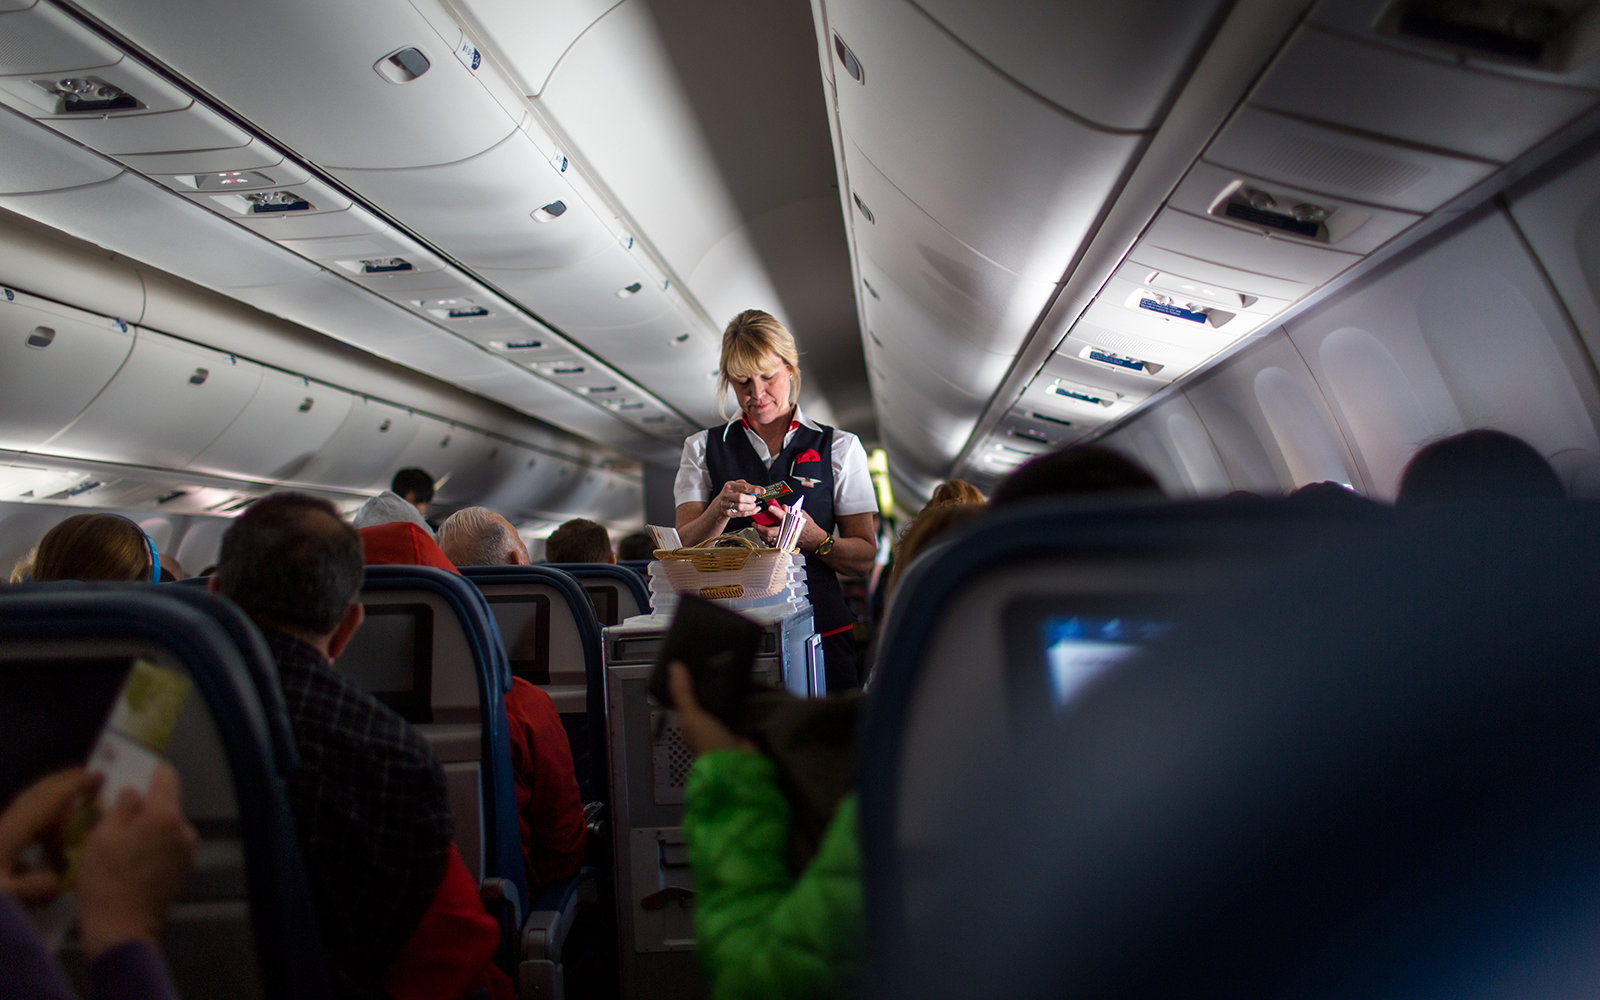 Flight Attendant on airplane